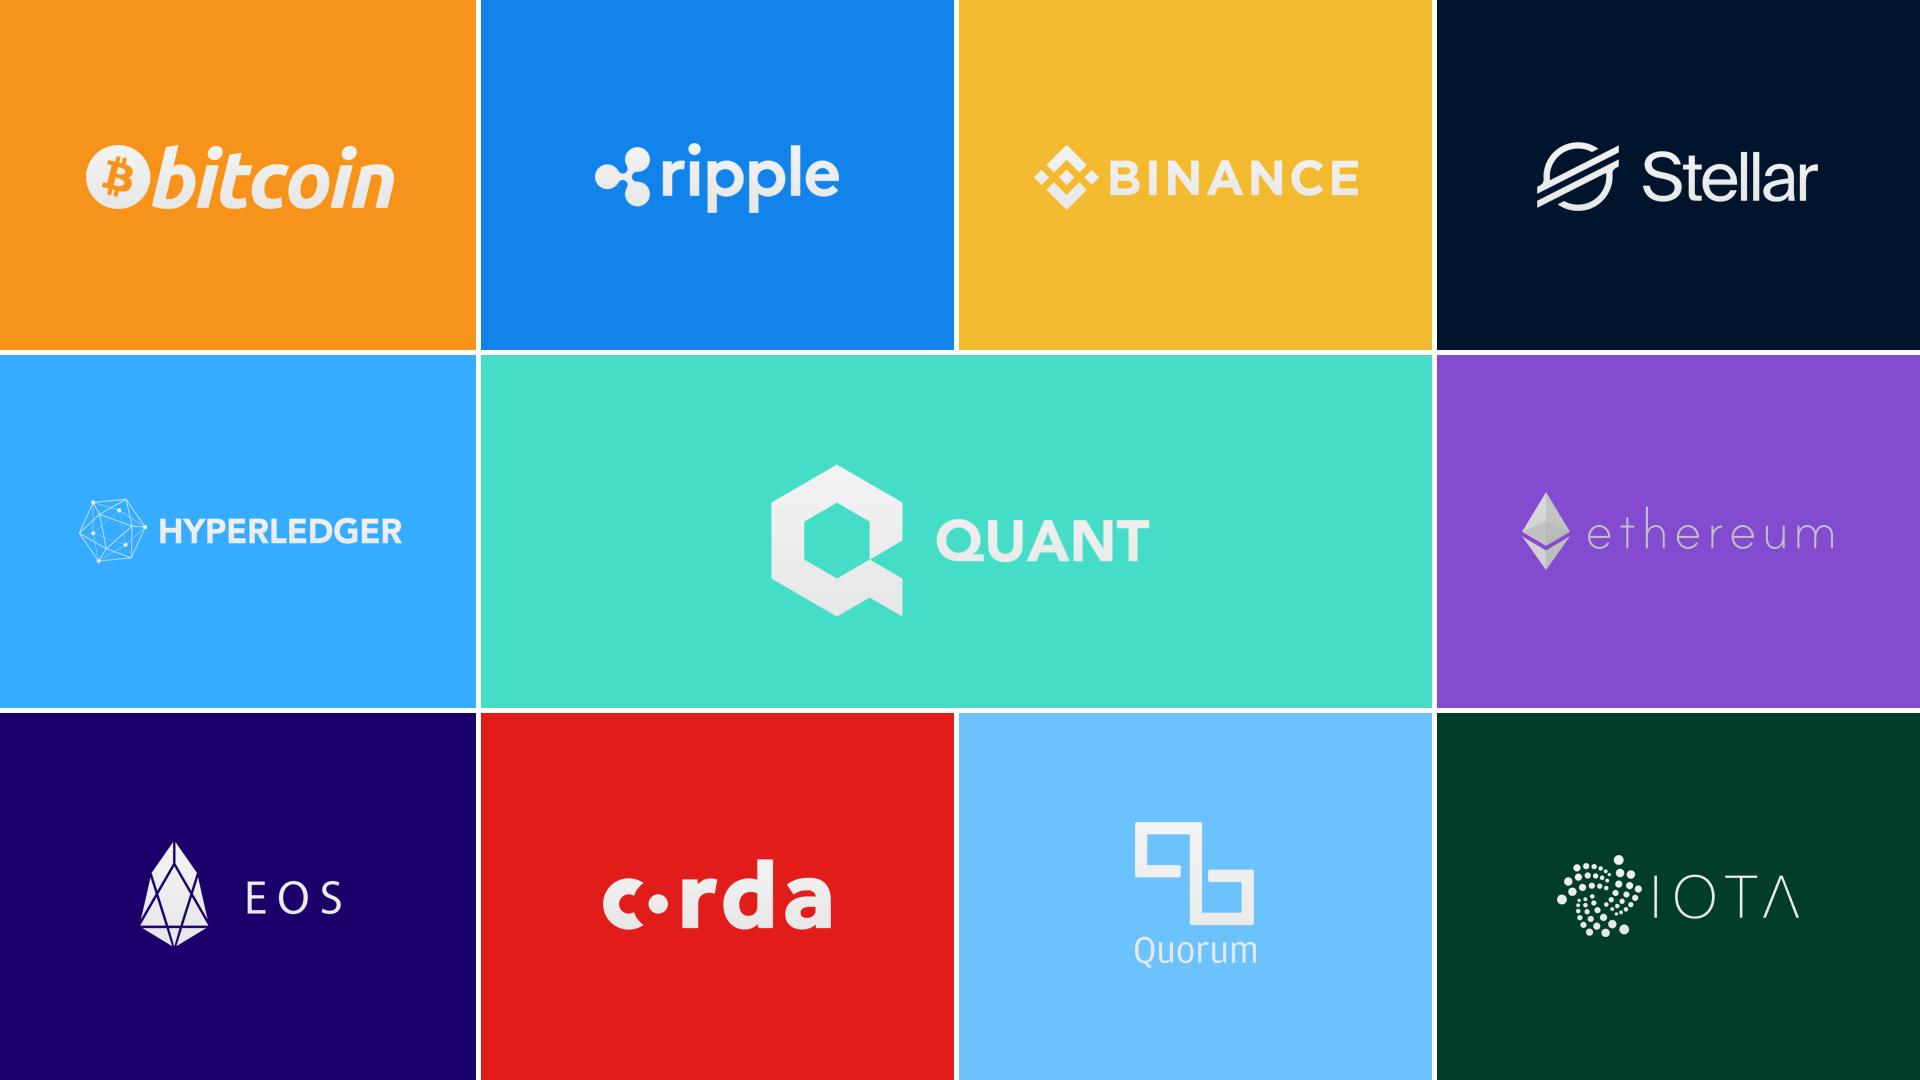 So far #Overledger has connected..  #Bitcoin #Ethereum #Ripple #Hyperledger #Corda #Quorum #Binance #Stellar #IOTA #EOS   These #blockchains can now interoperate..  90% of #Enterprise based blockchains covered..  The largest #crypto chains connected..  $QNT #DLT $BTC $ETH $XRP https://t.co/CnvMGSRHqk